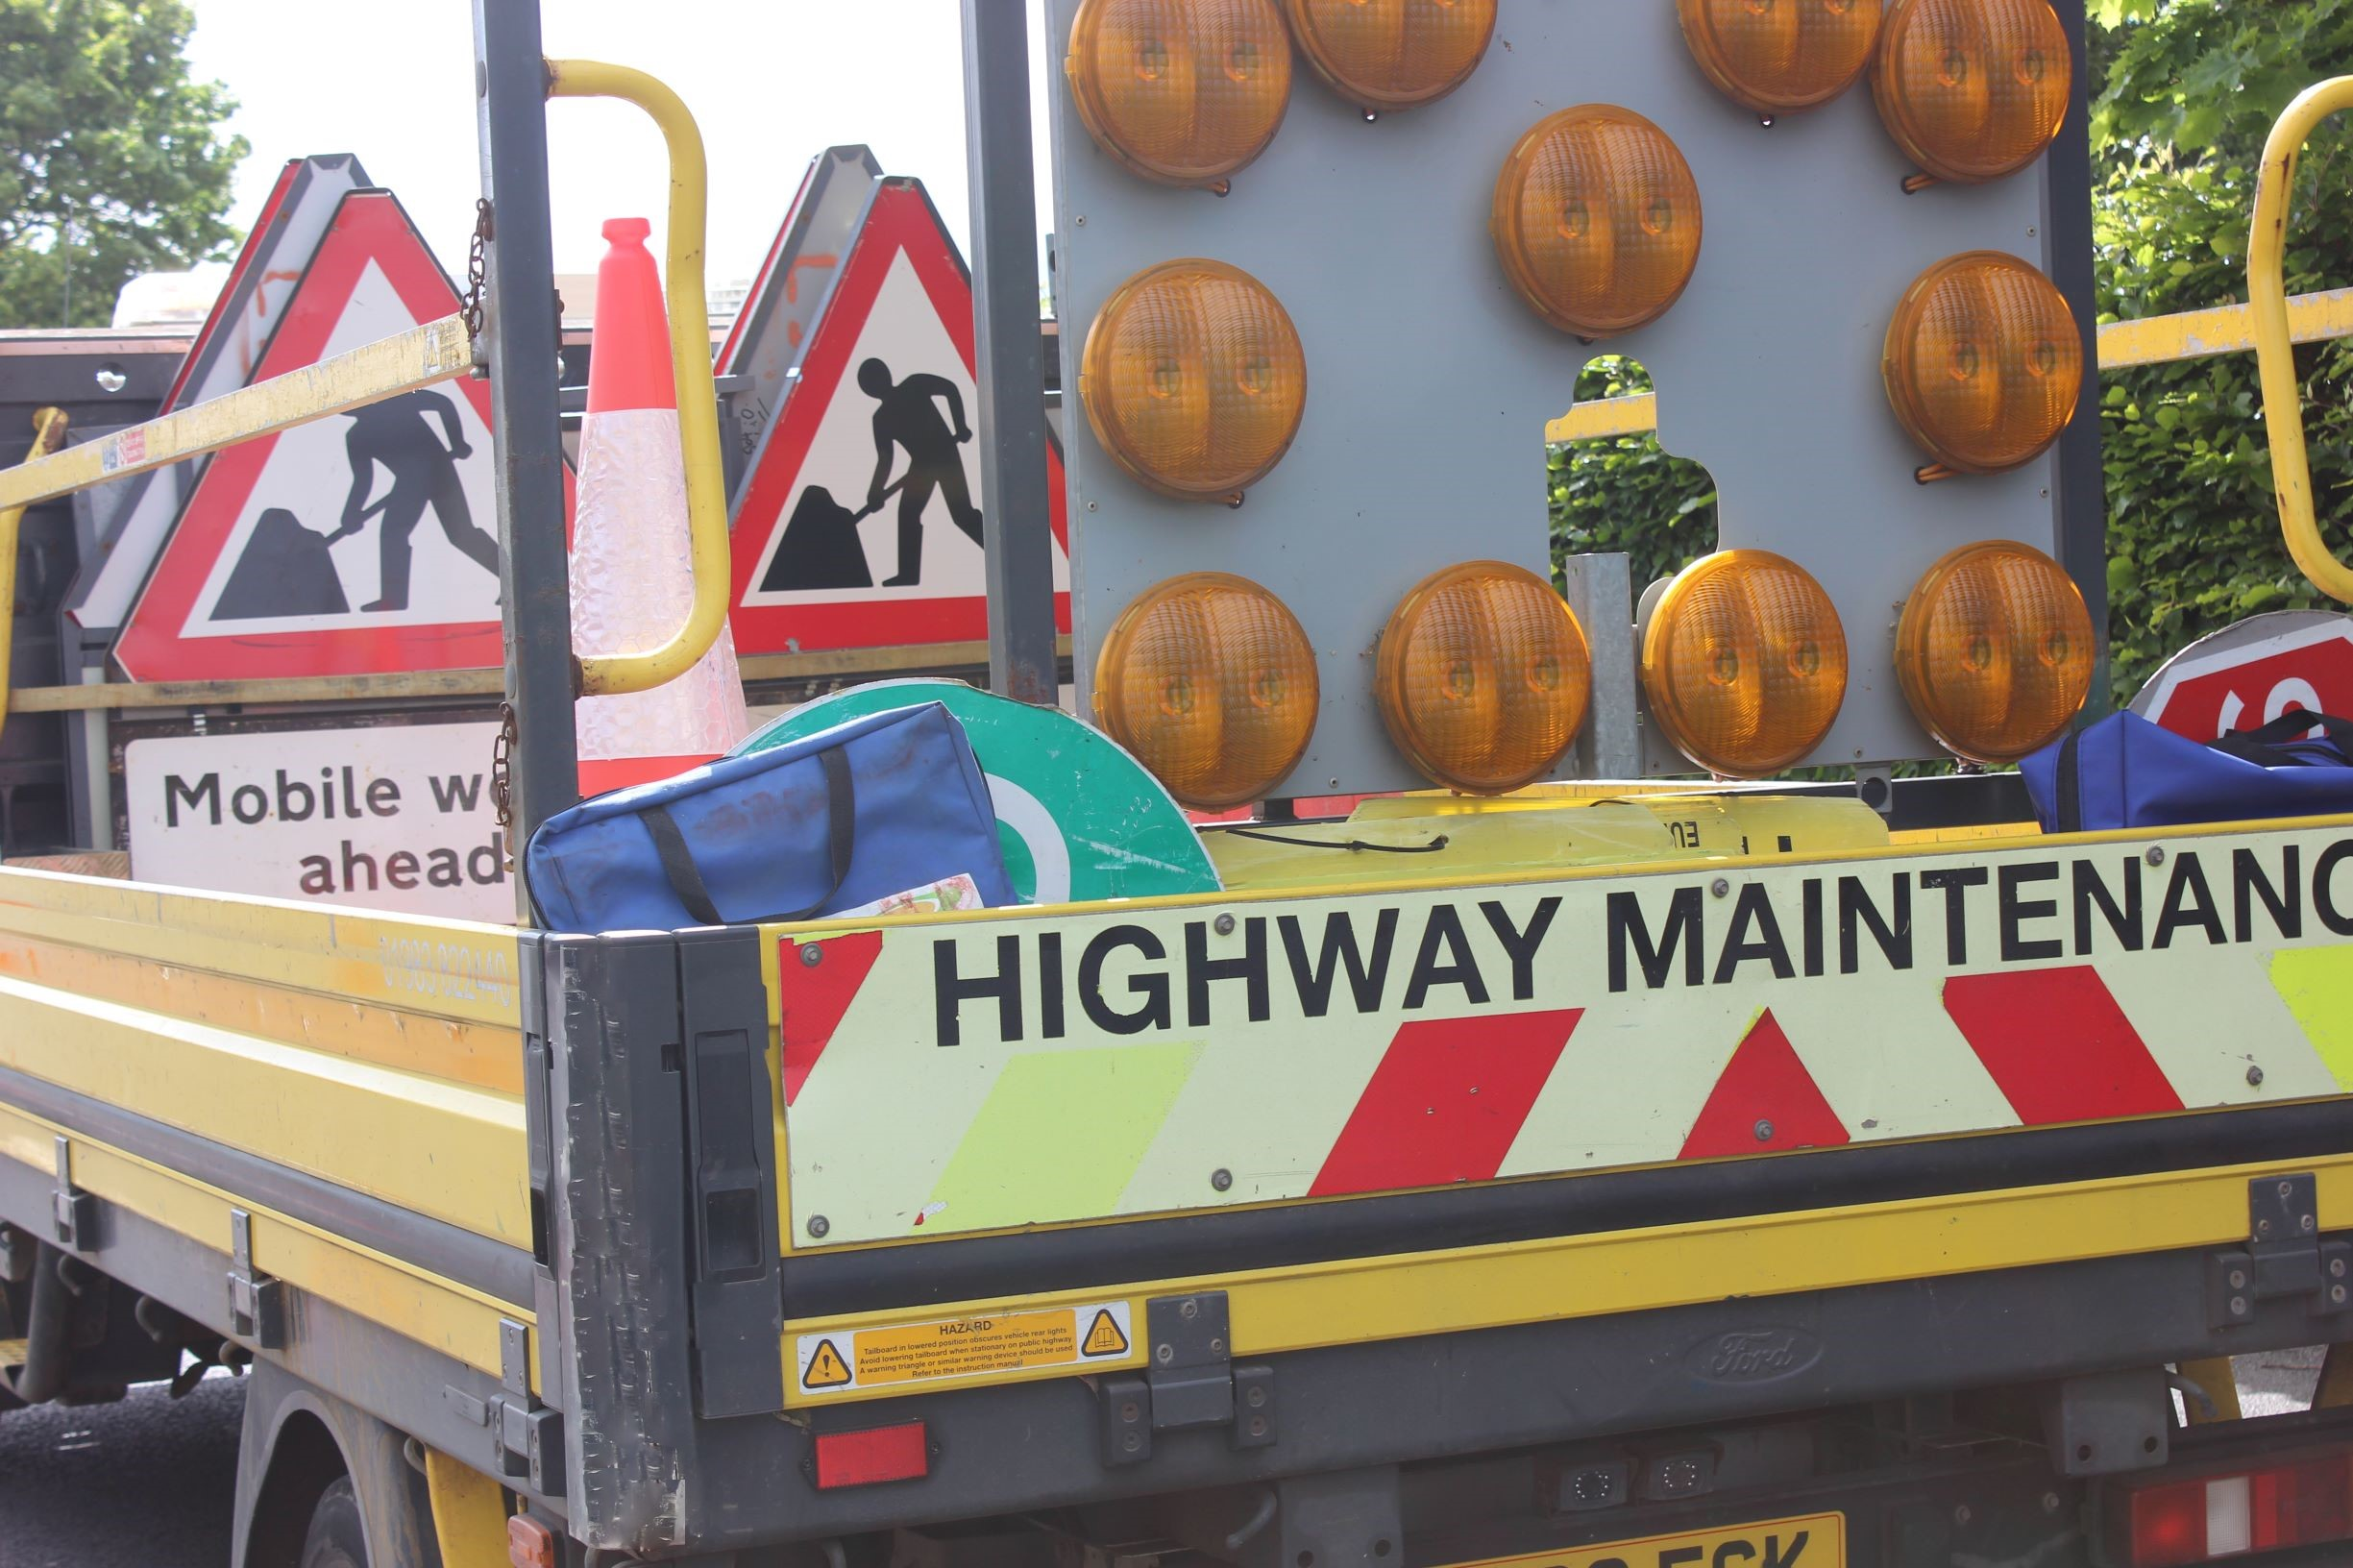 Photo showing highway maintenance vehicle loaded up with signage for site works